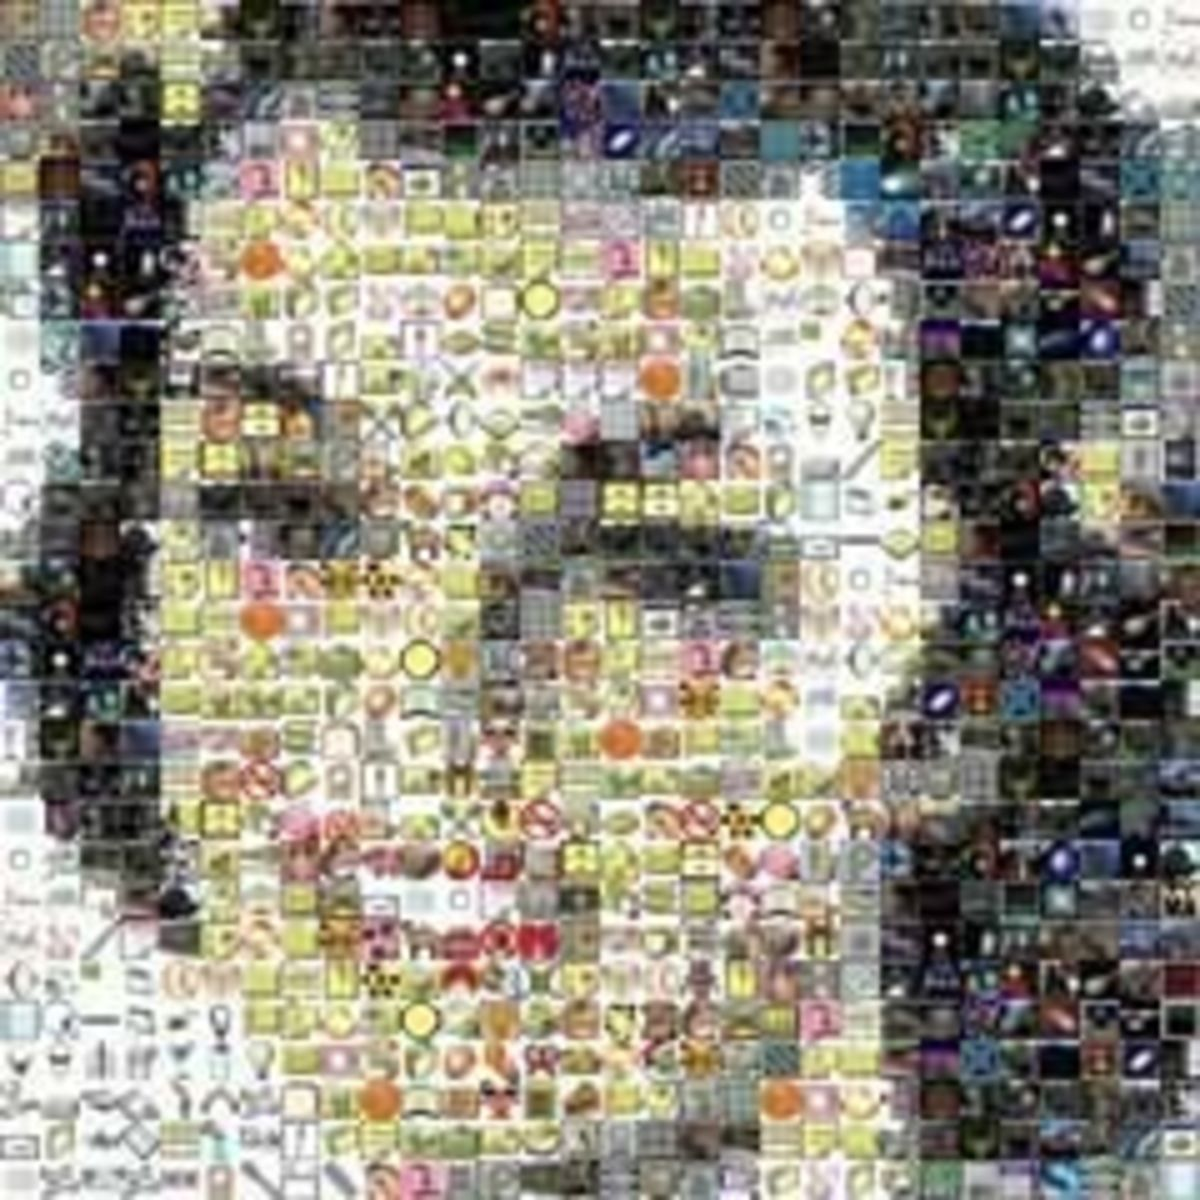 Mazaika Photo mosaic software